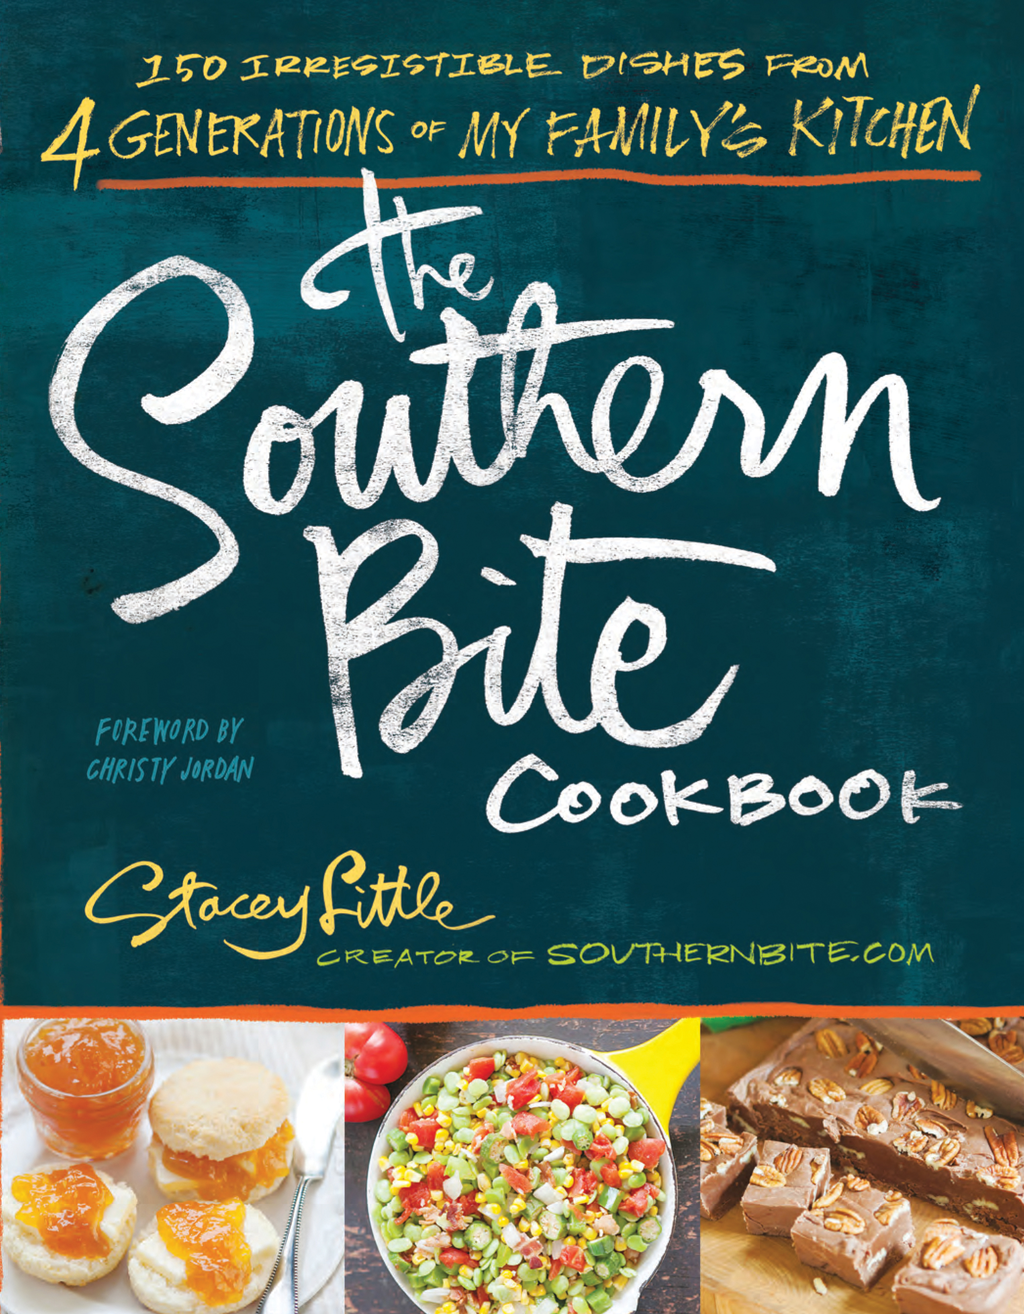 The Southern Bite Cookbook 150 Irresistible Dishes from 4 Generations of My Family's Kitchen